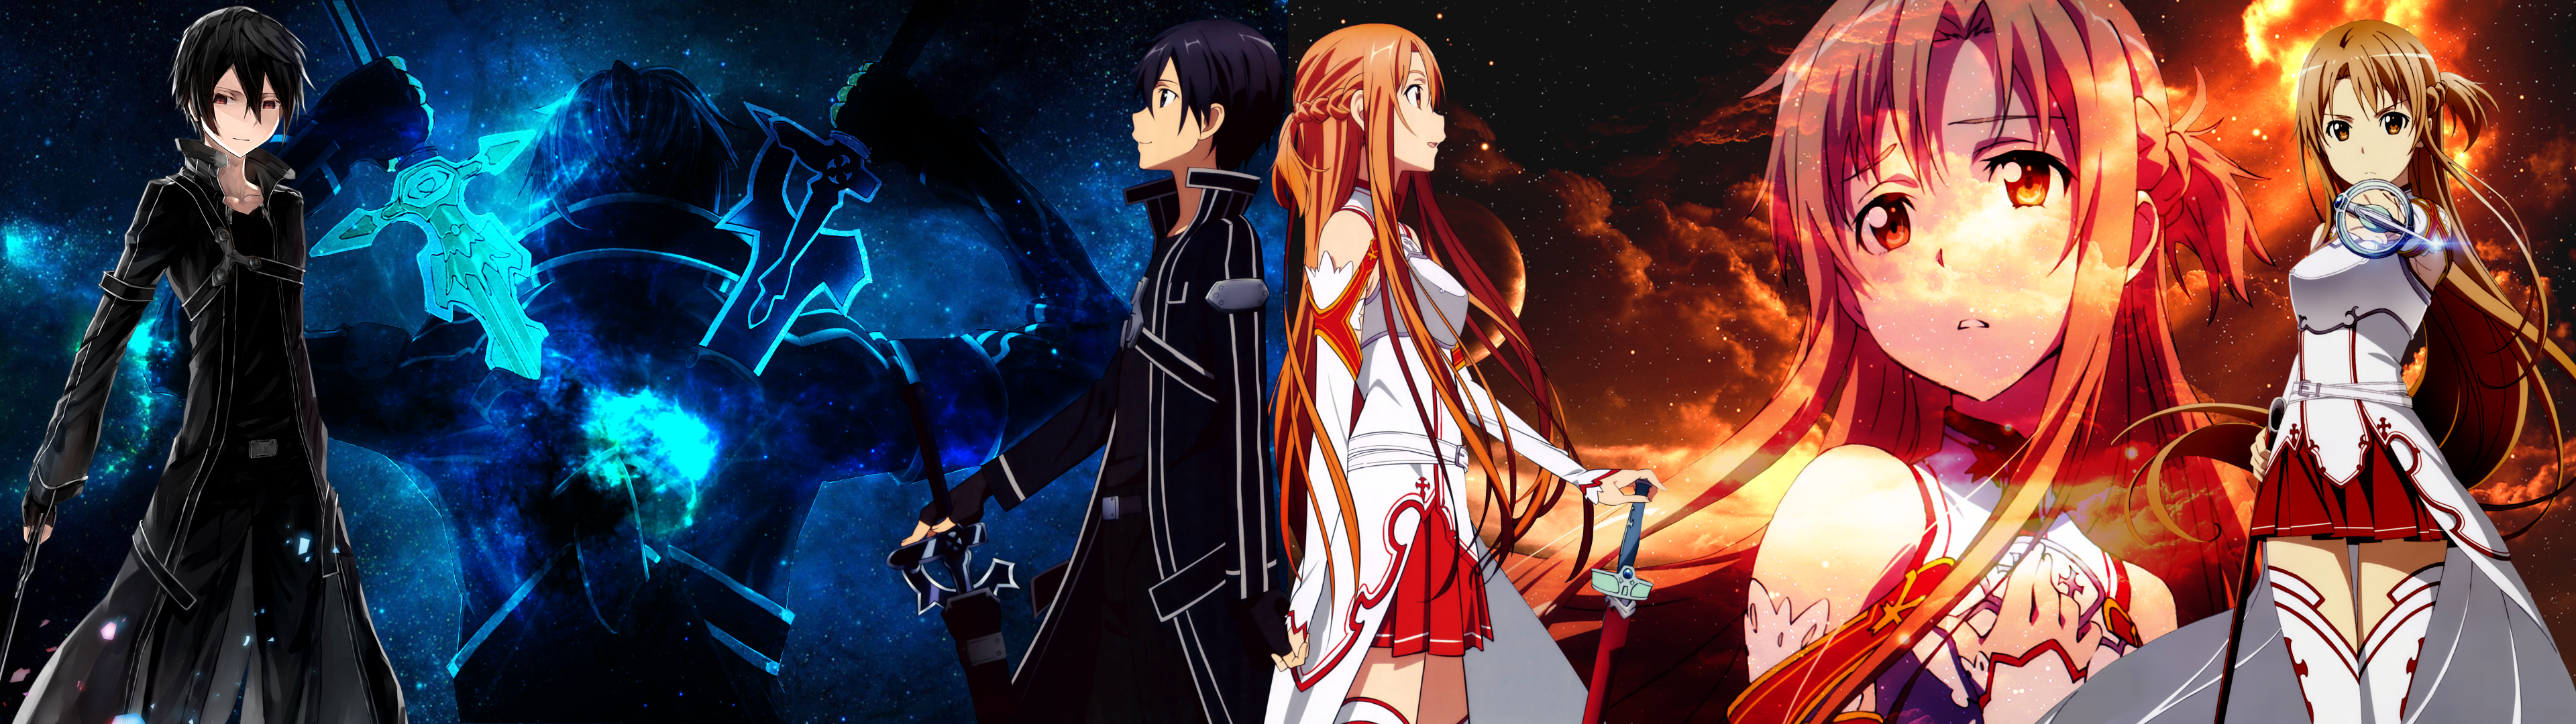 2356 sword art online hd wallpapers | background images - wallpaper